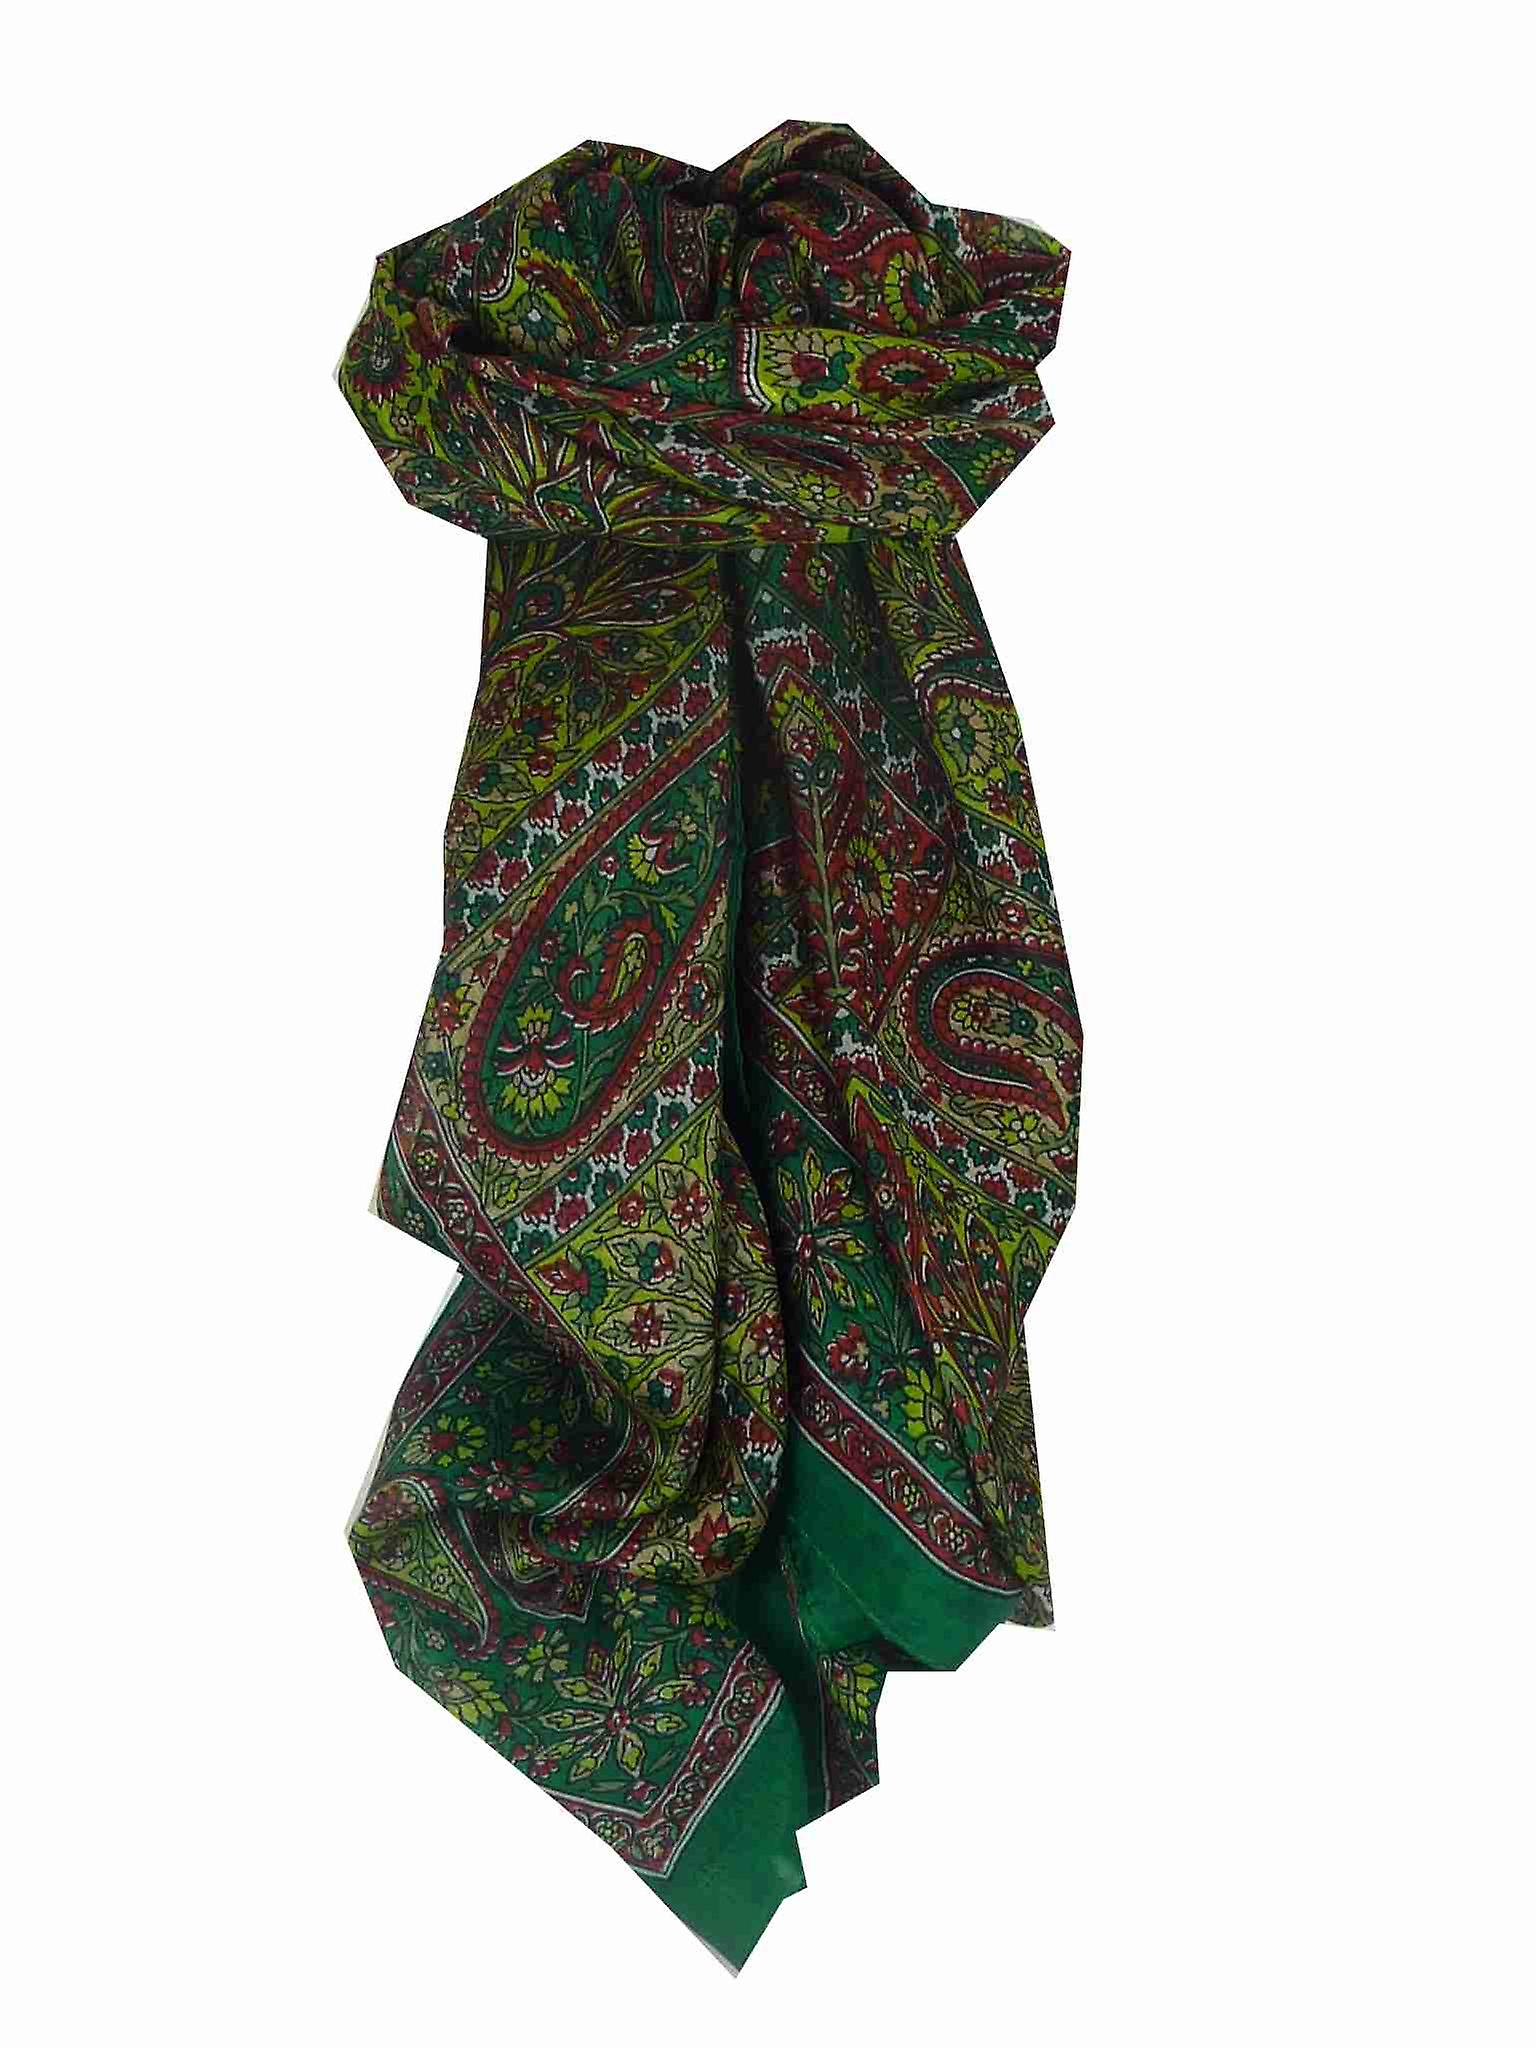 Mulberry Silk Traditional Square Scarf Solan Green by Pashmina & Silk